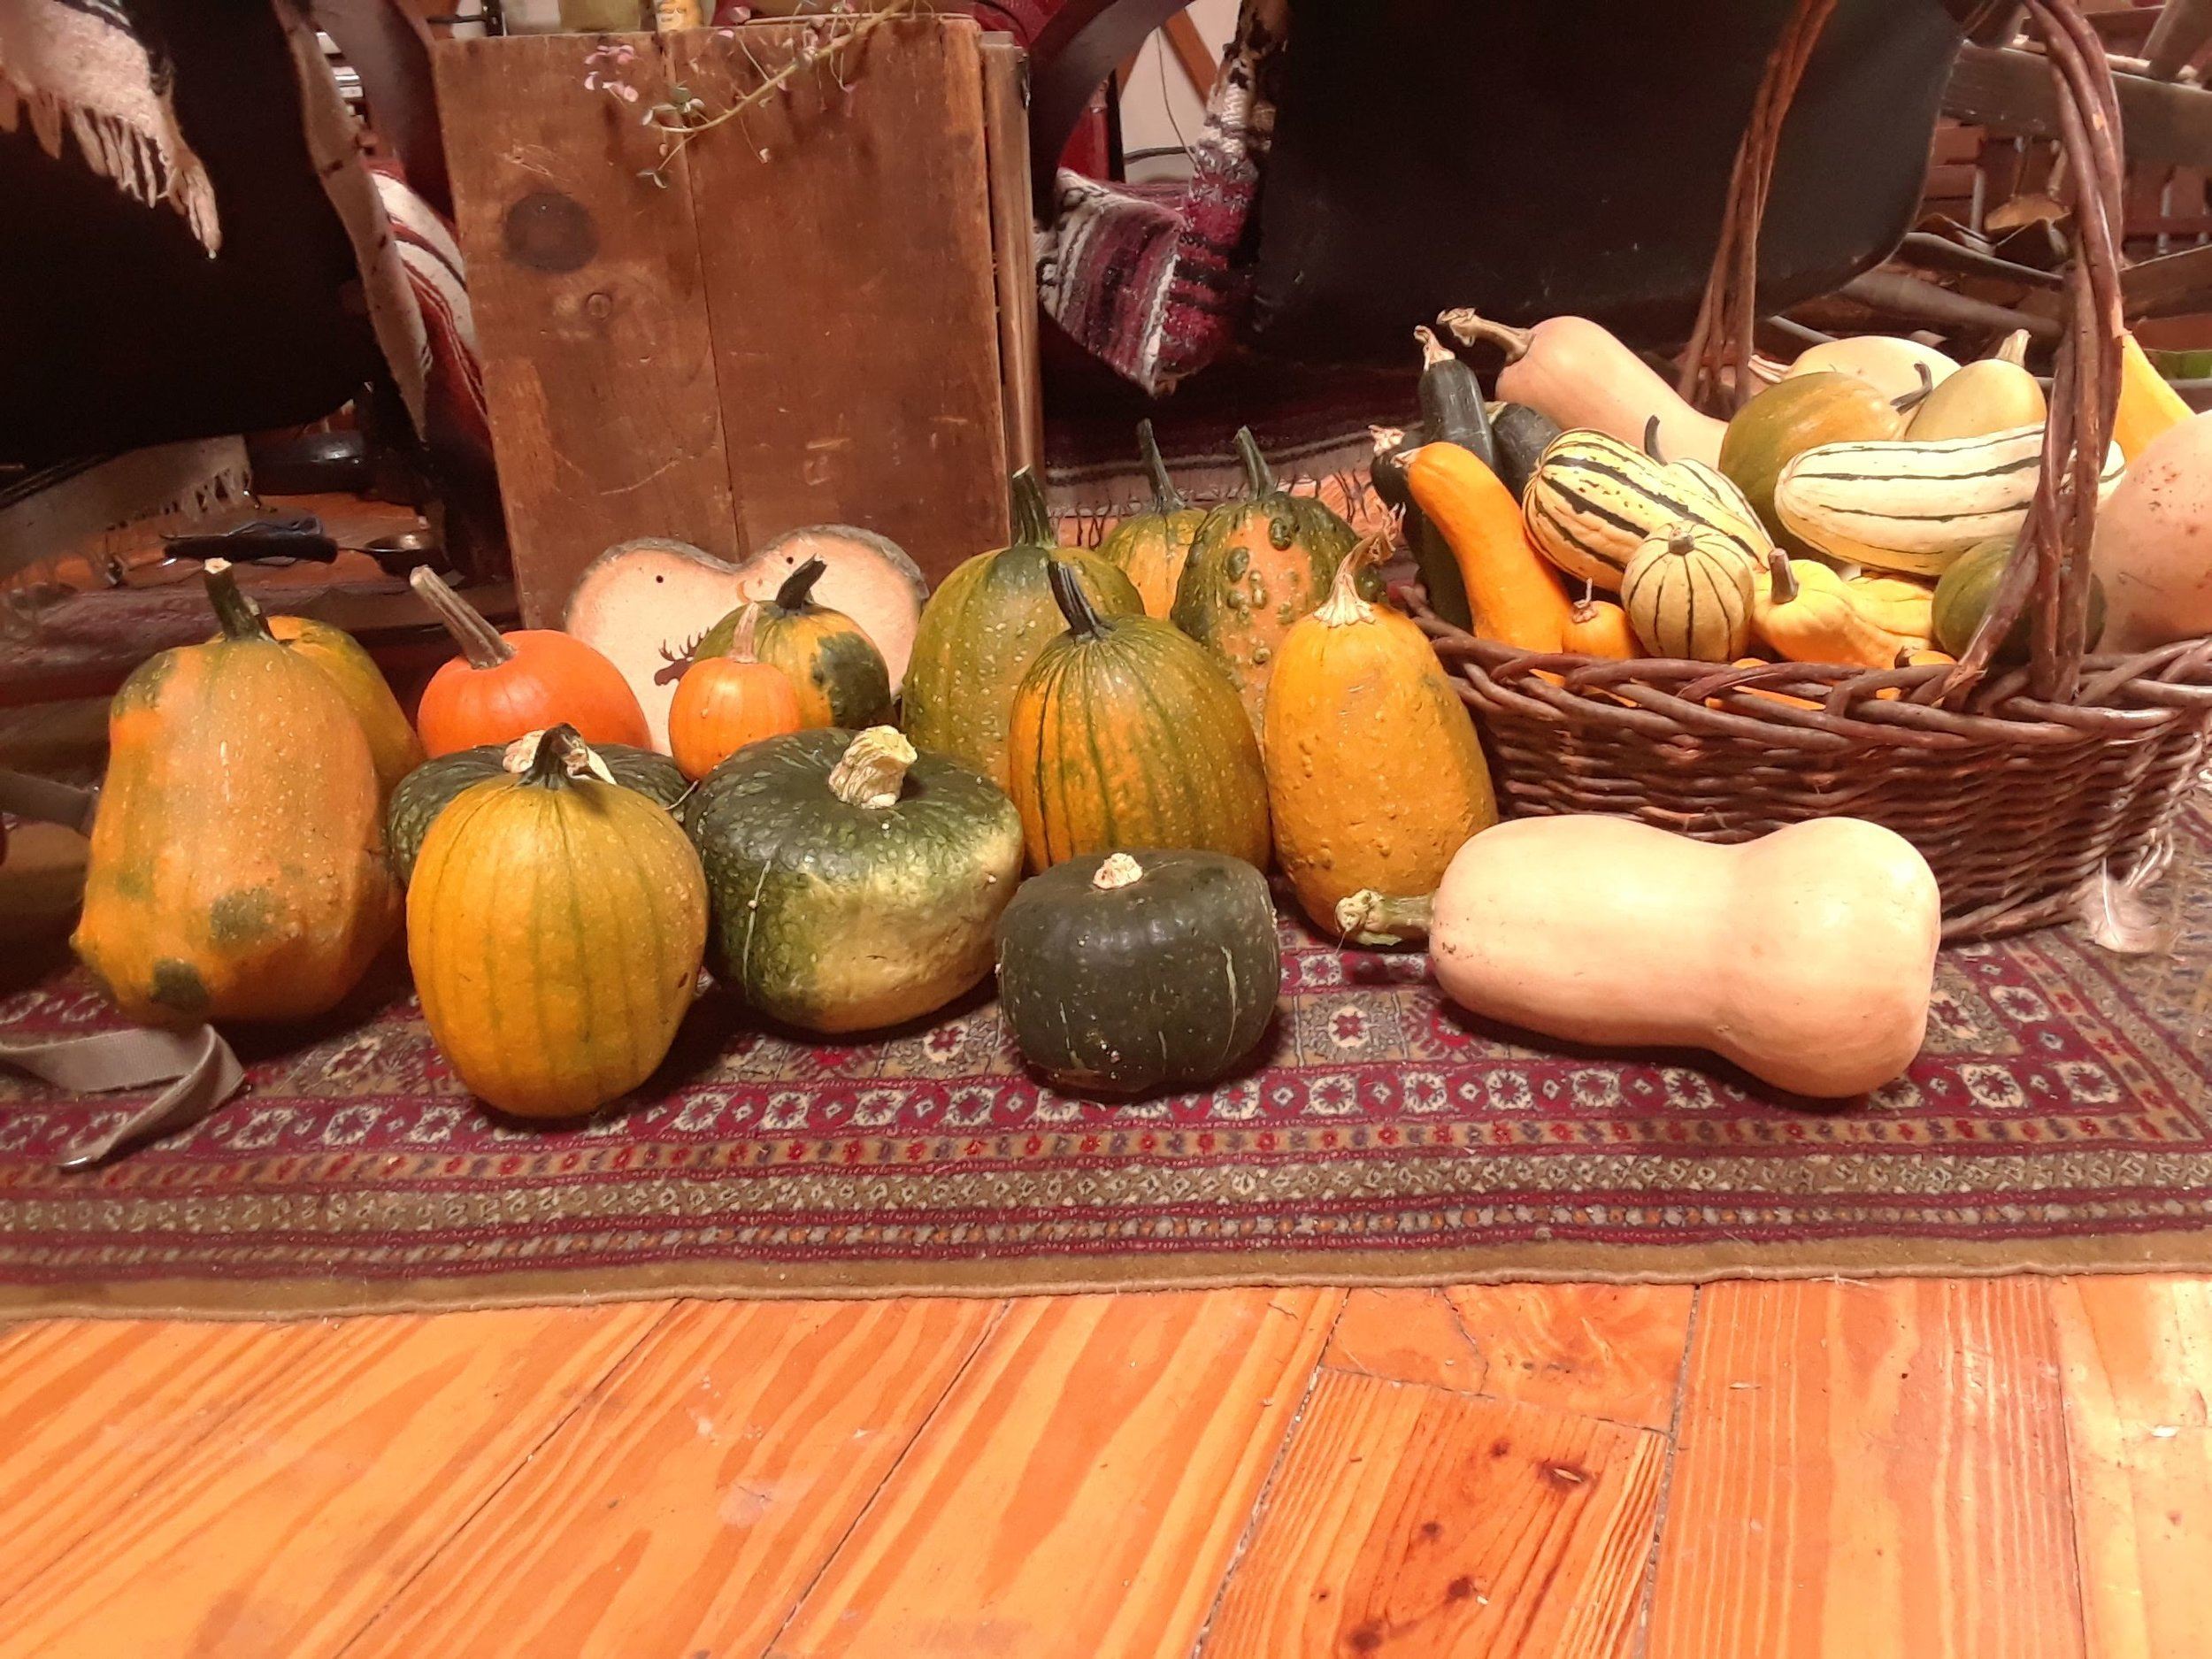 Part of our squash harvest, ready to be stored for winter. These are a great storage food for homesteaders!